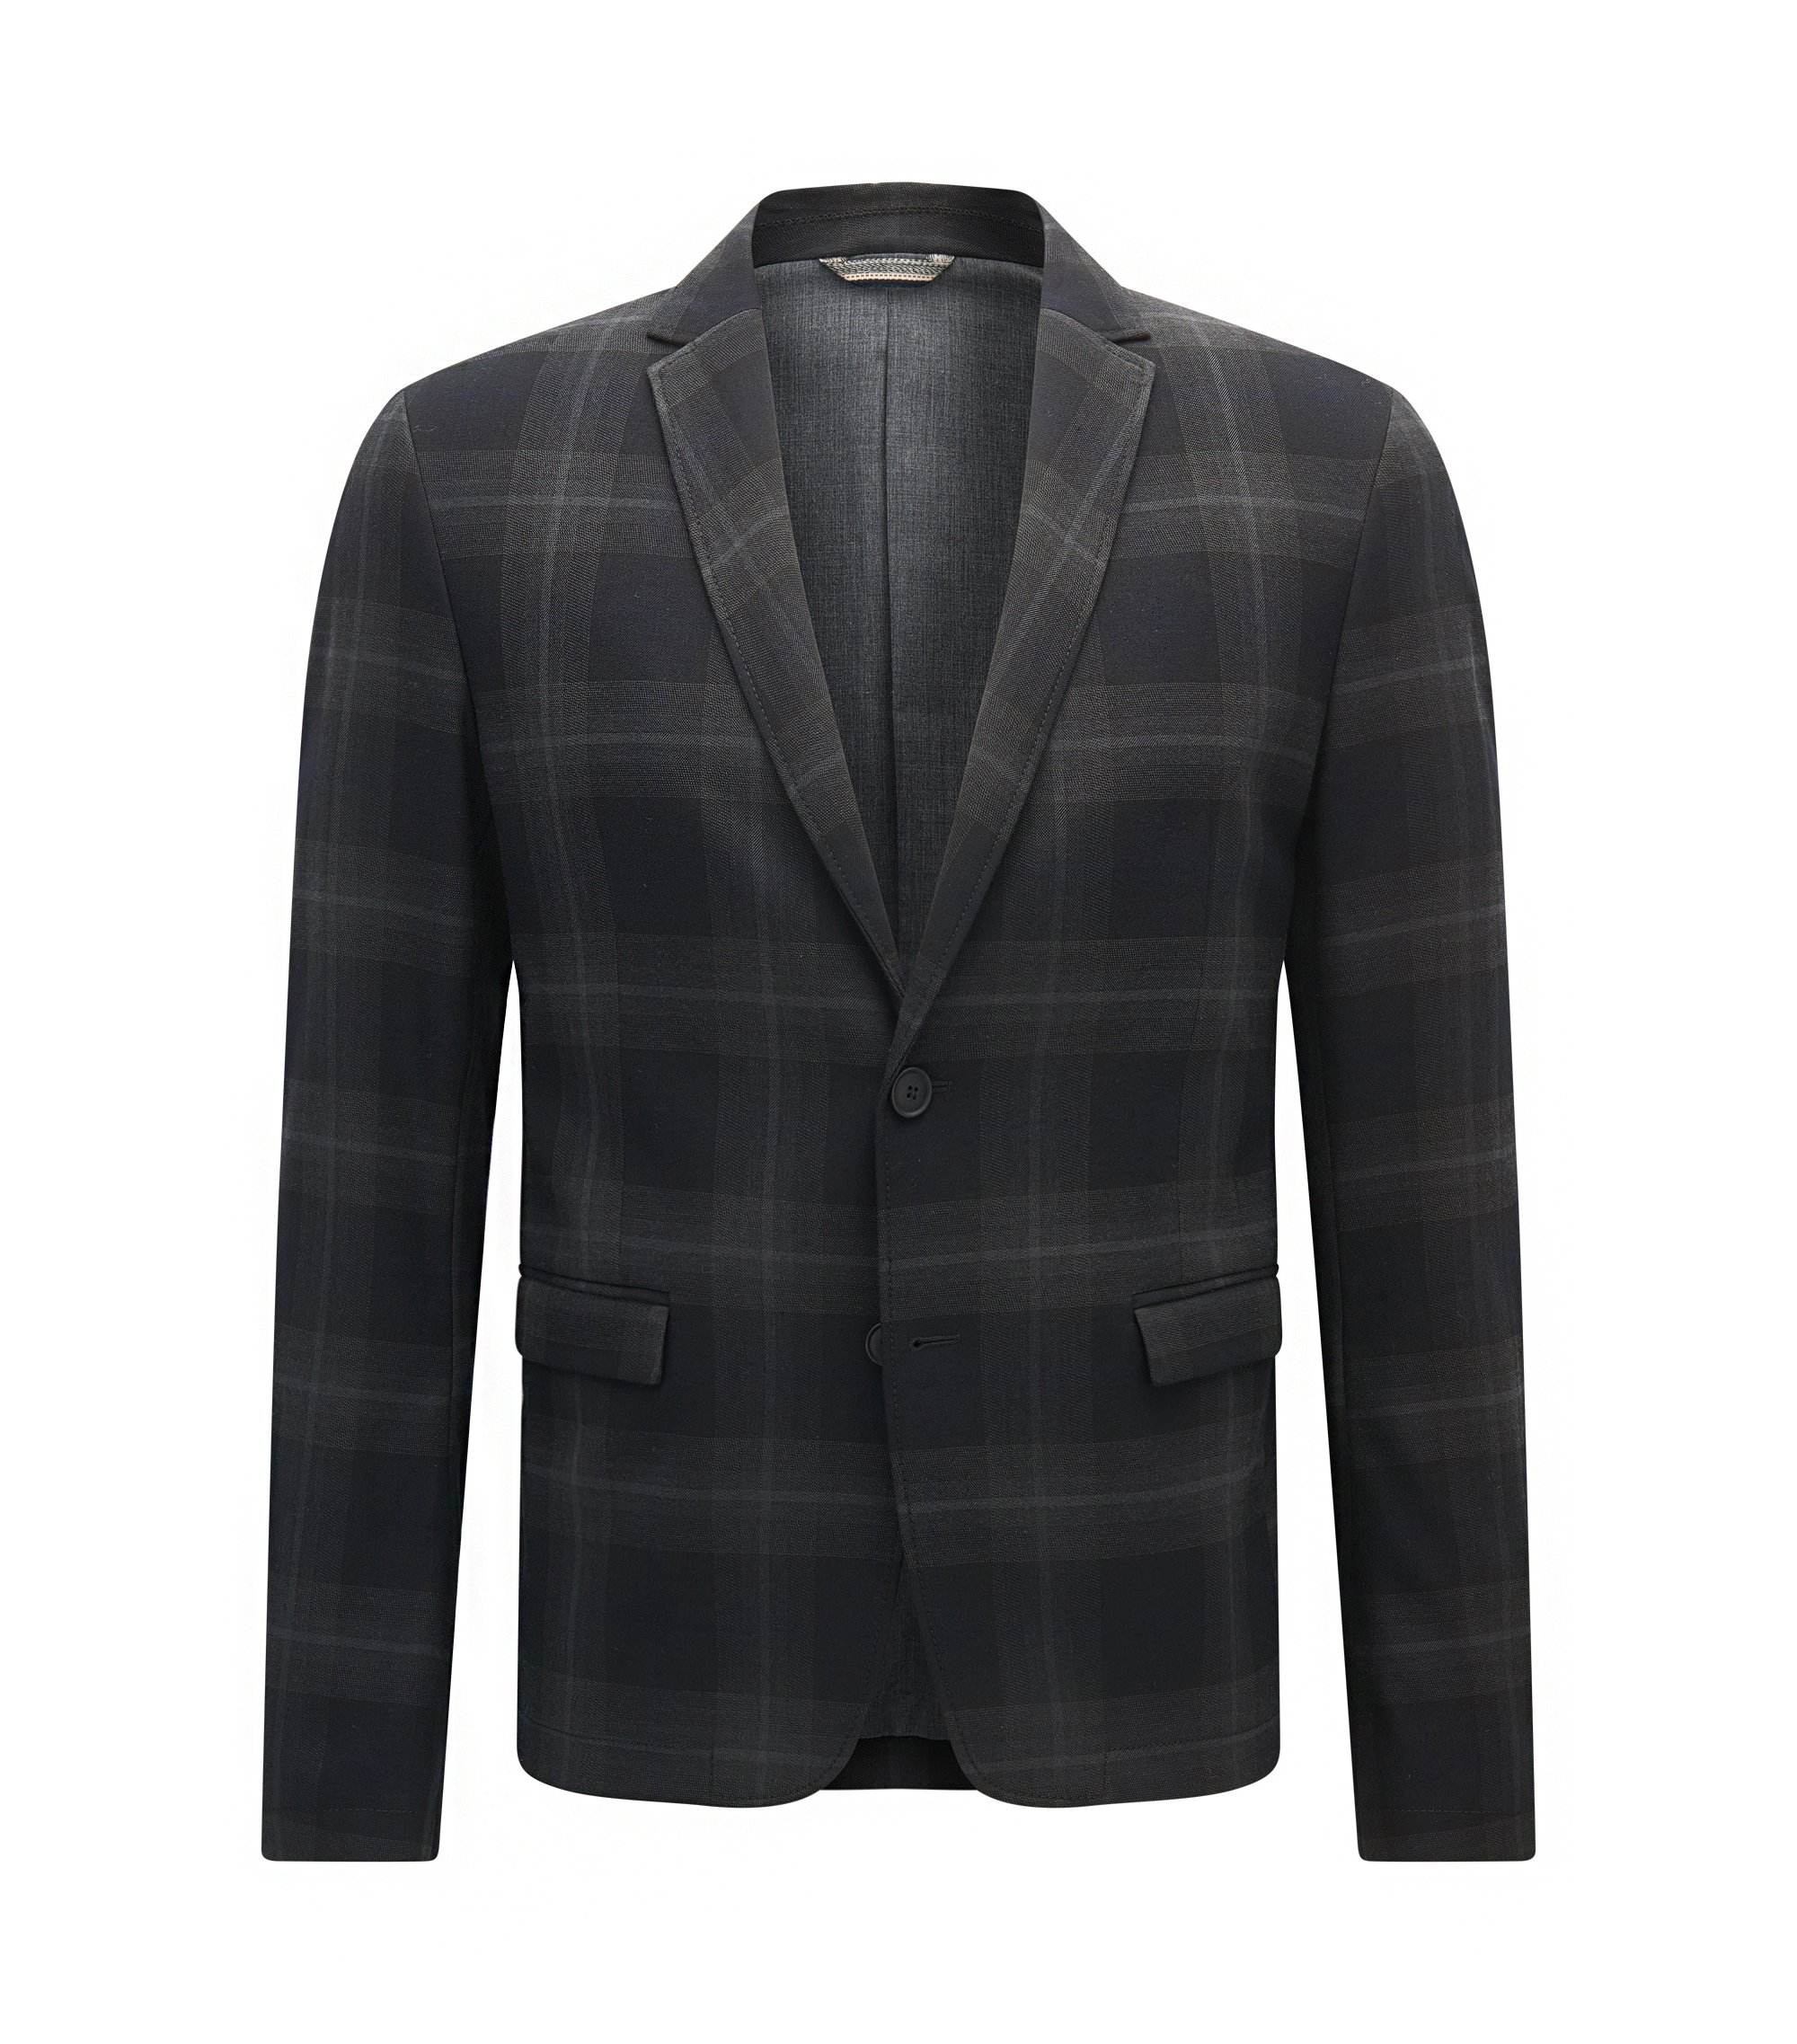 Slim-fit jacket in checked fabric, Patterned